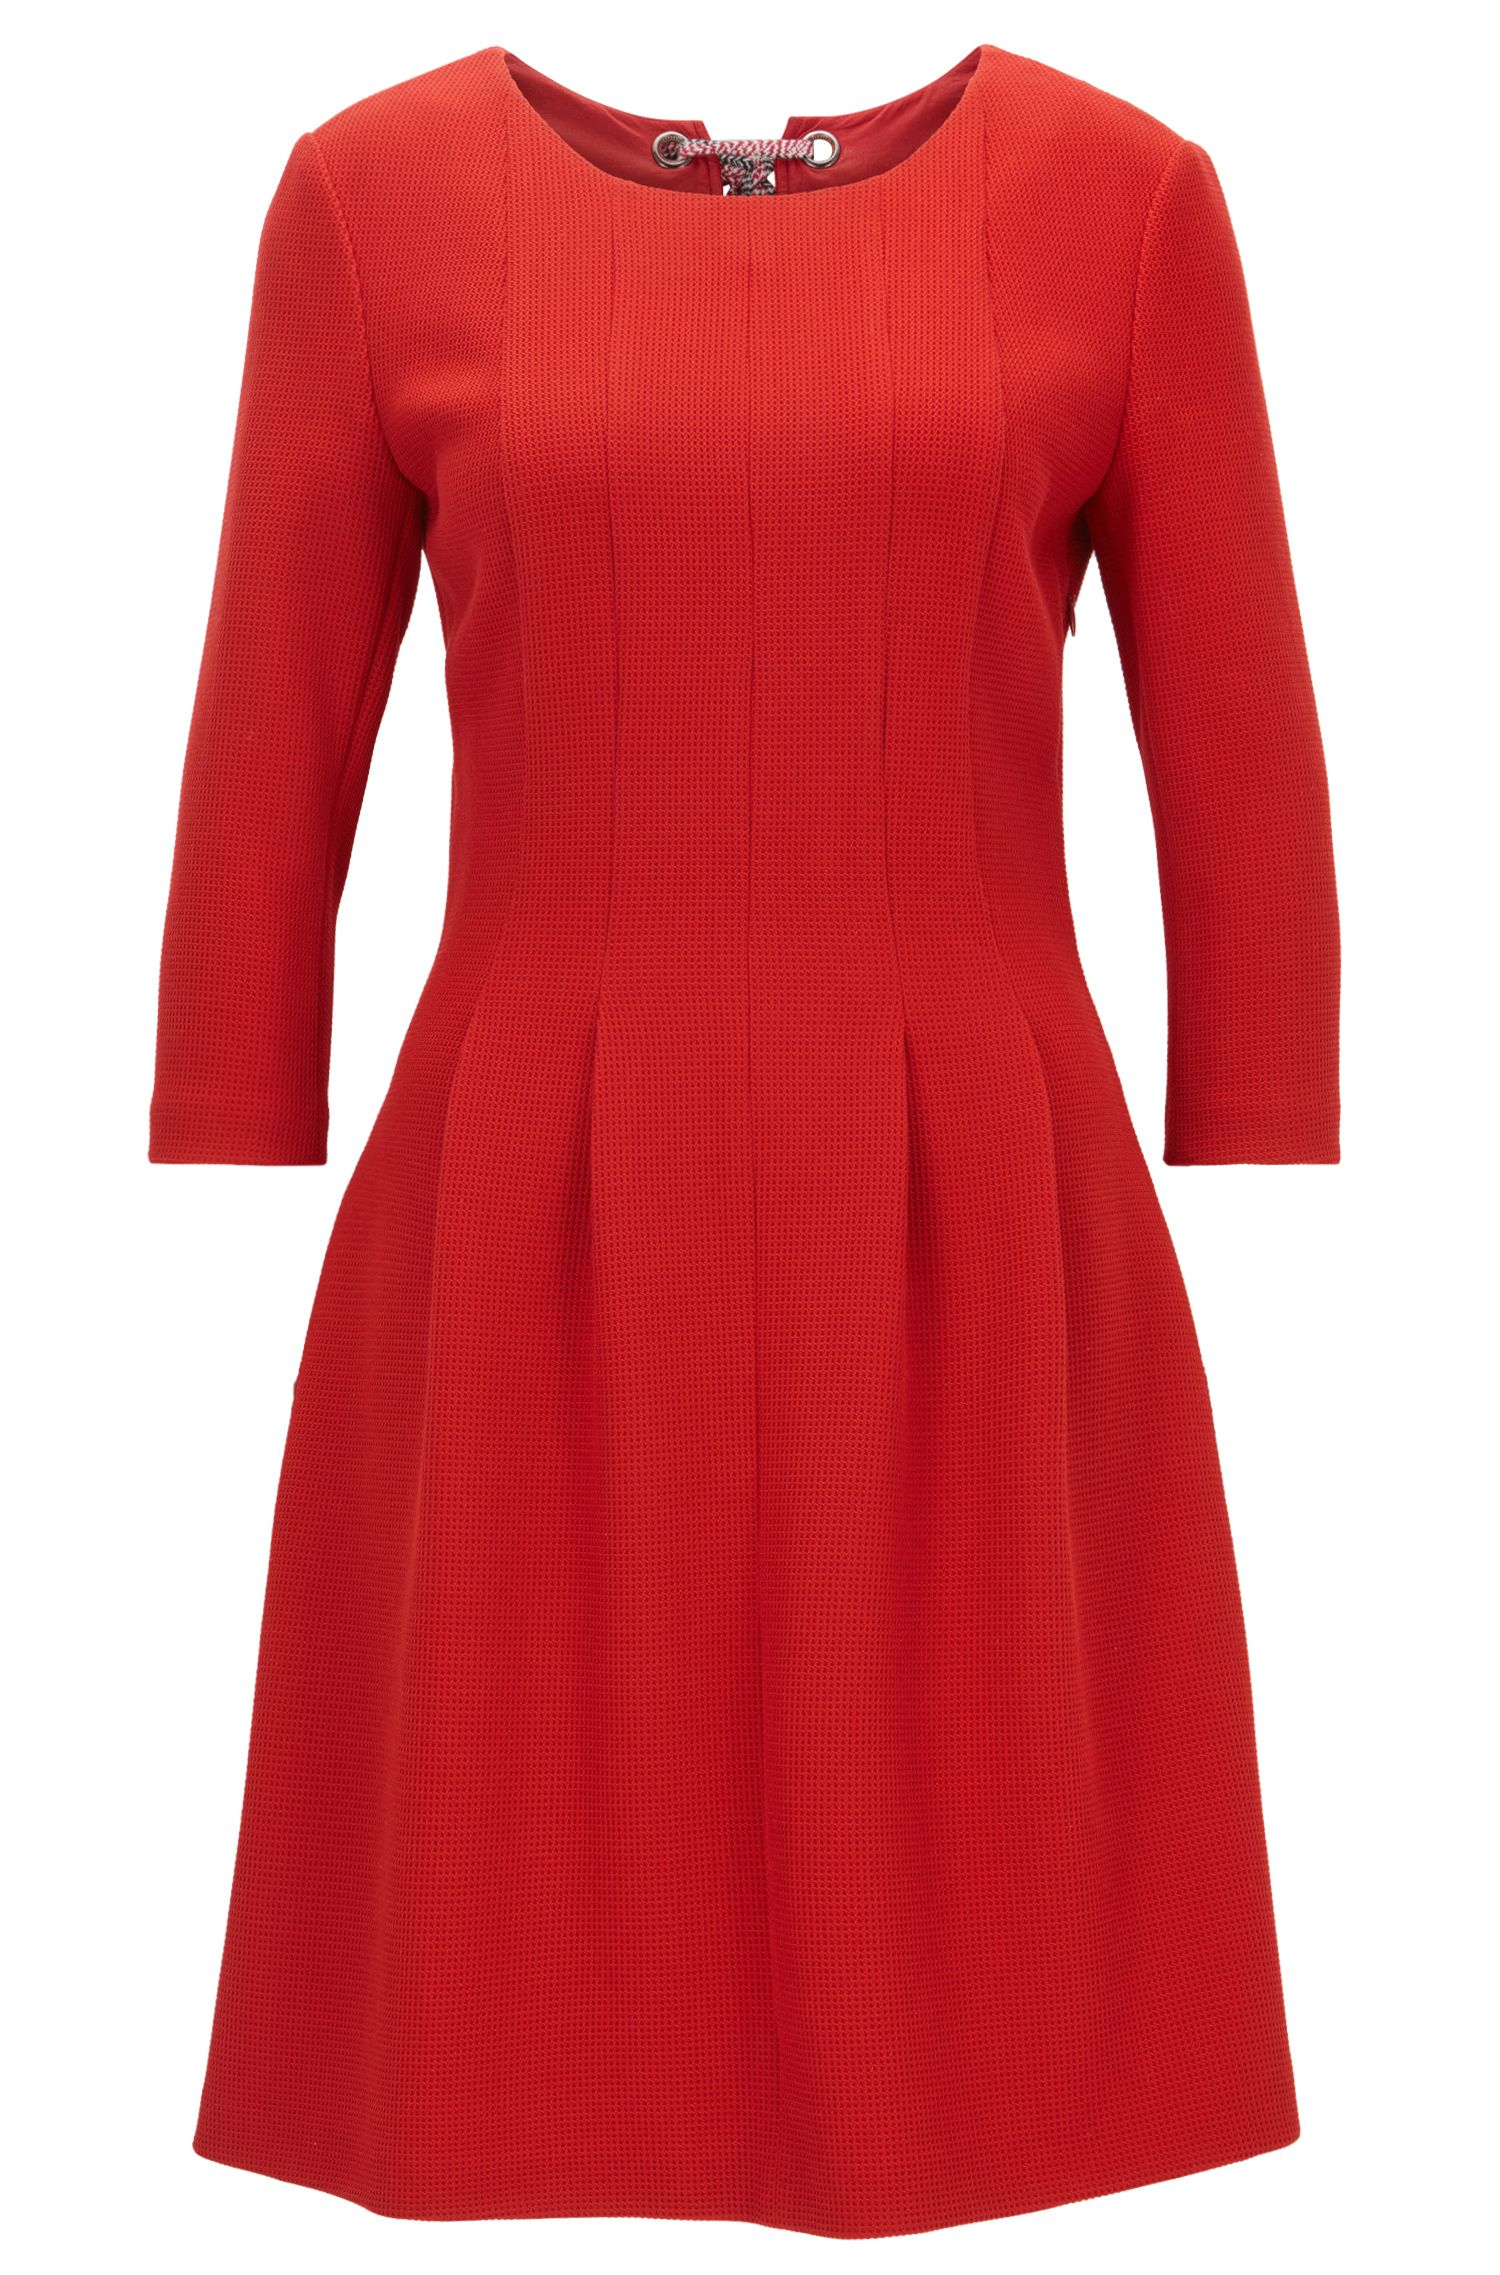 Structured dress with back bow detail